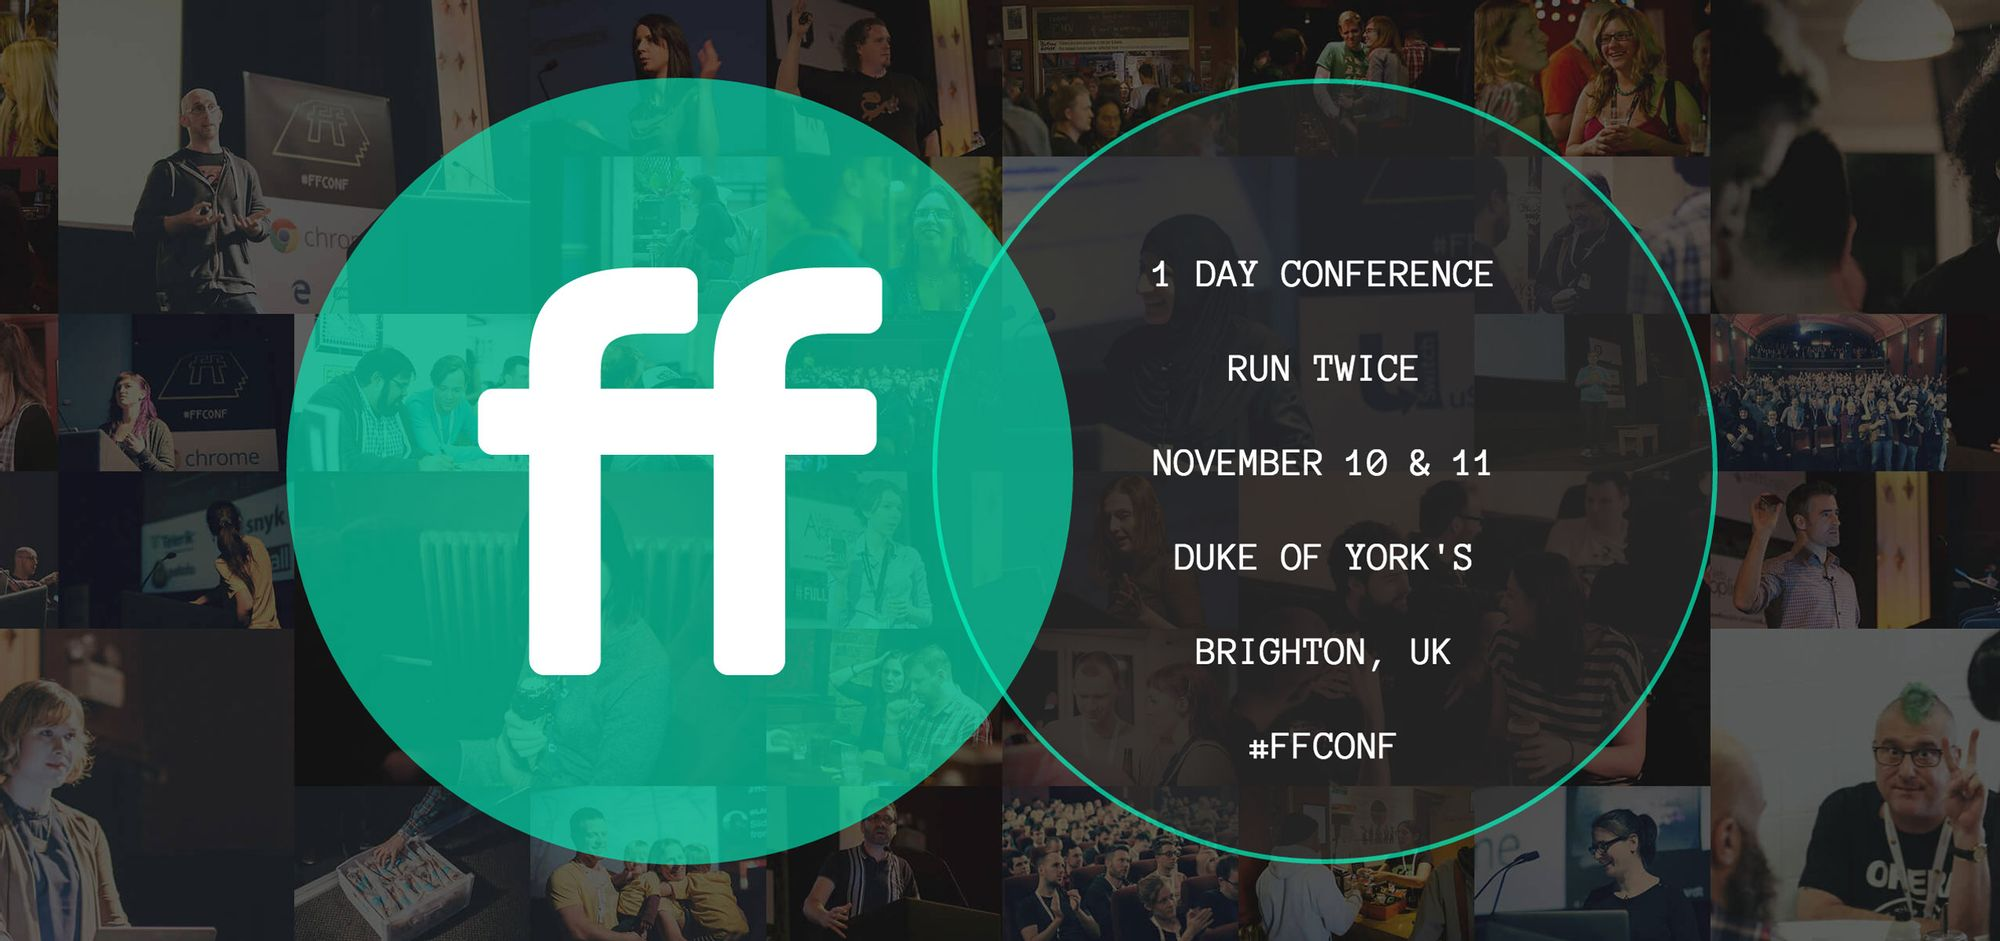 ffconf :: JavaScript Conference :: 10th & 11th November